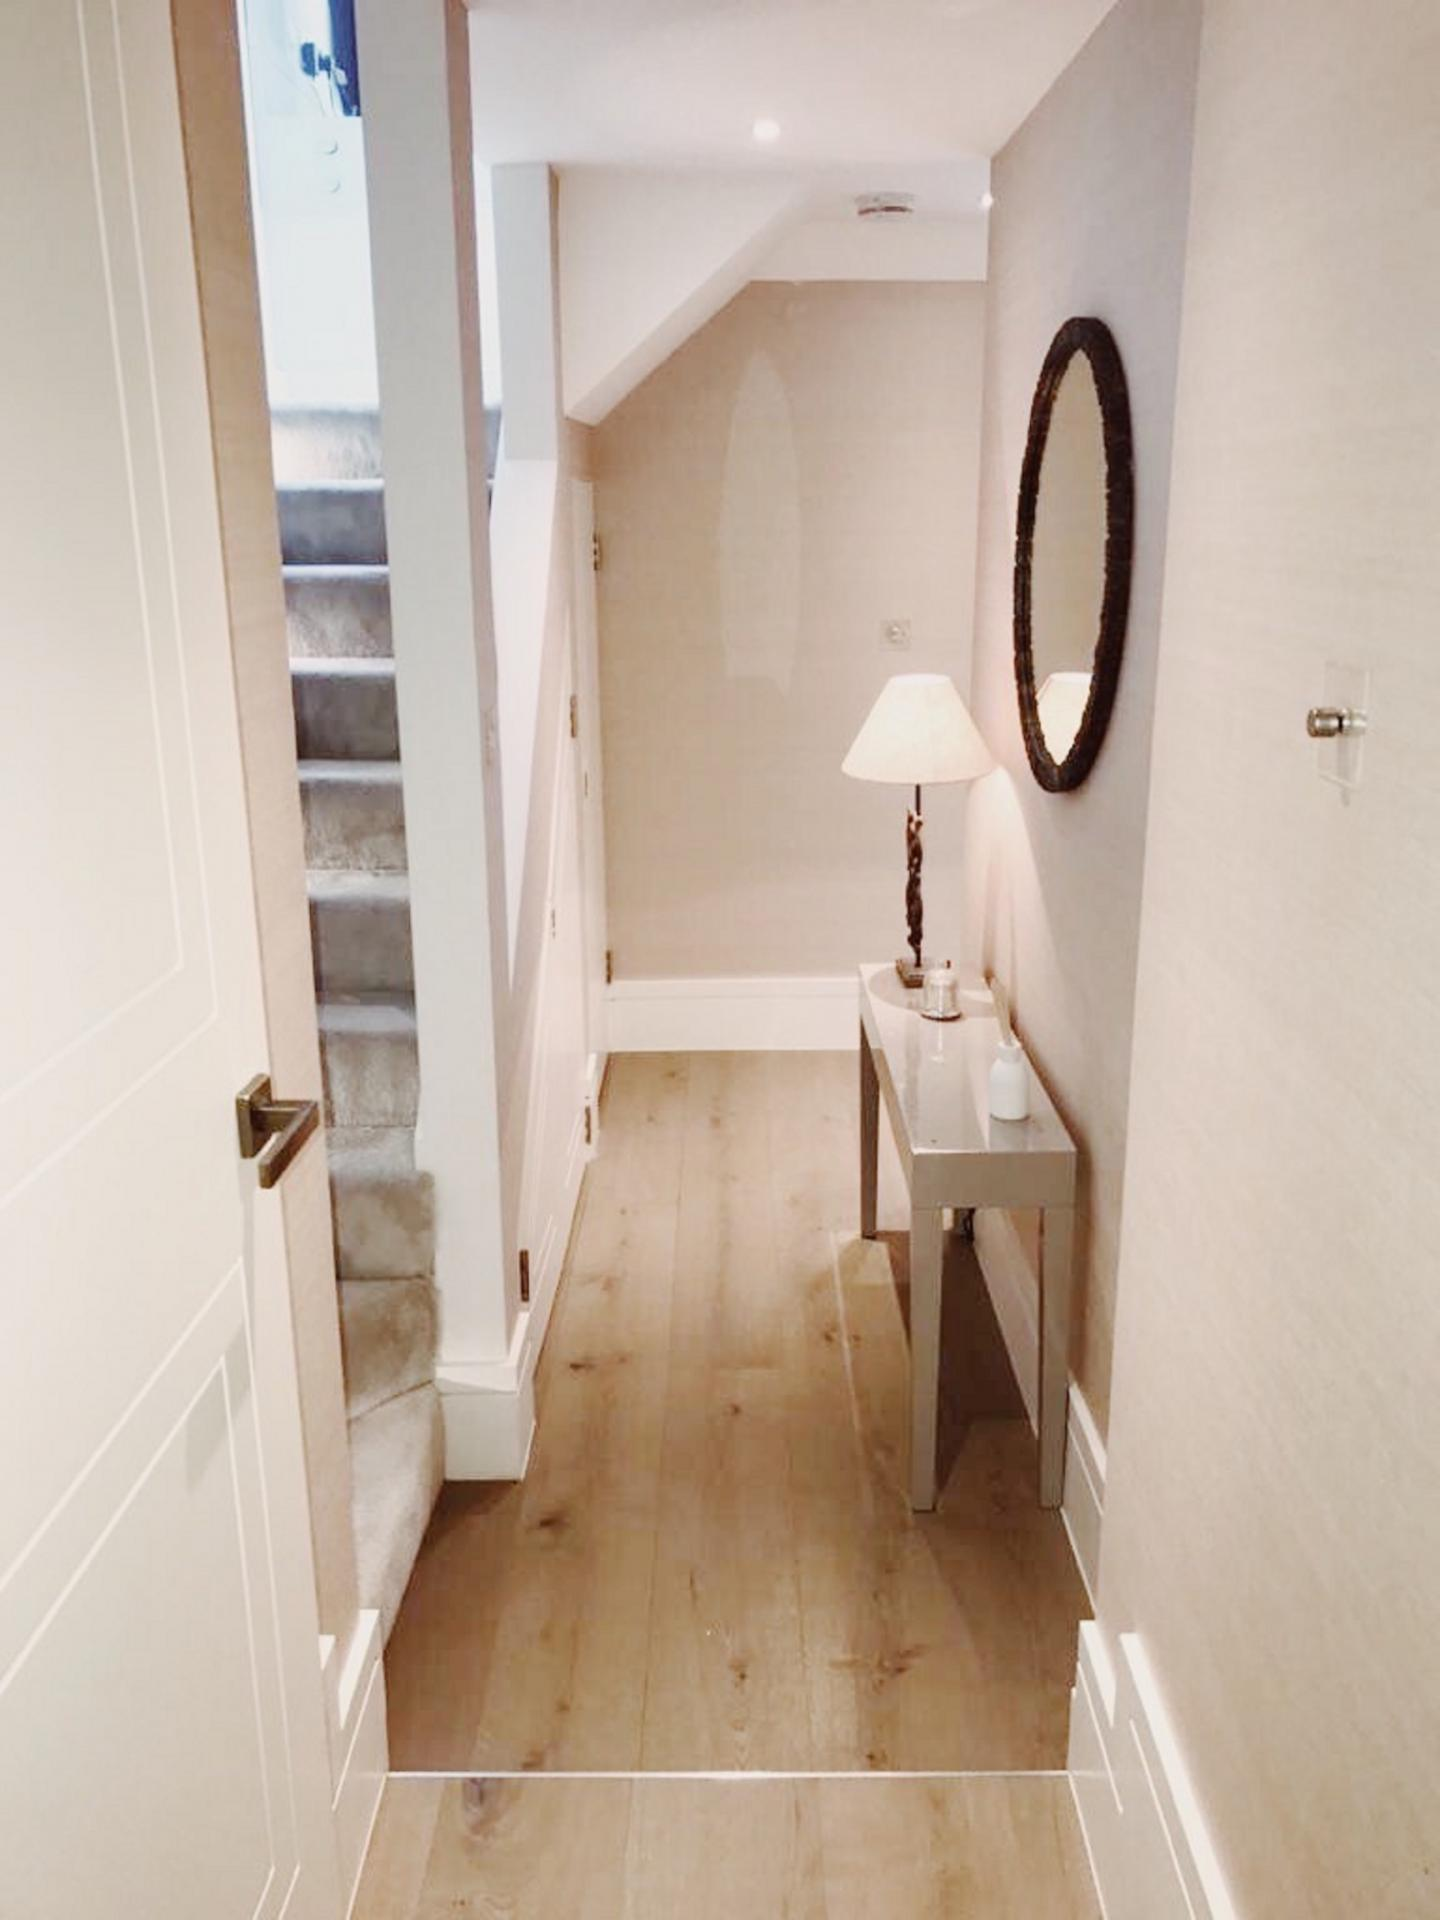 Hallway at Old Chelsea Apartment, Chelsea, London